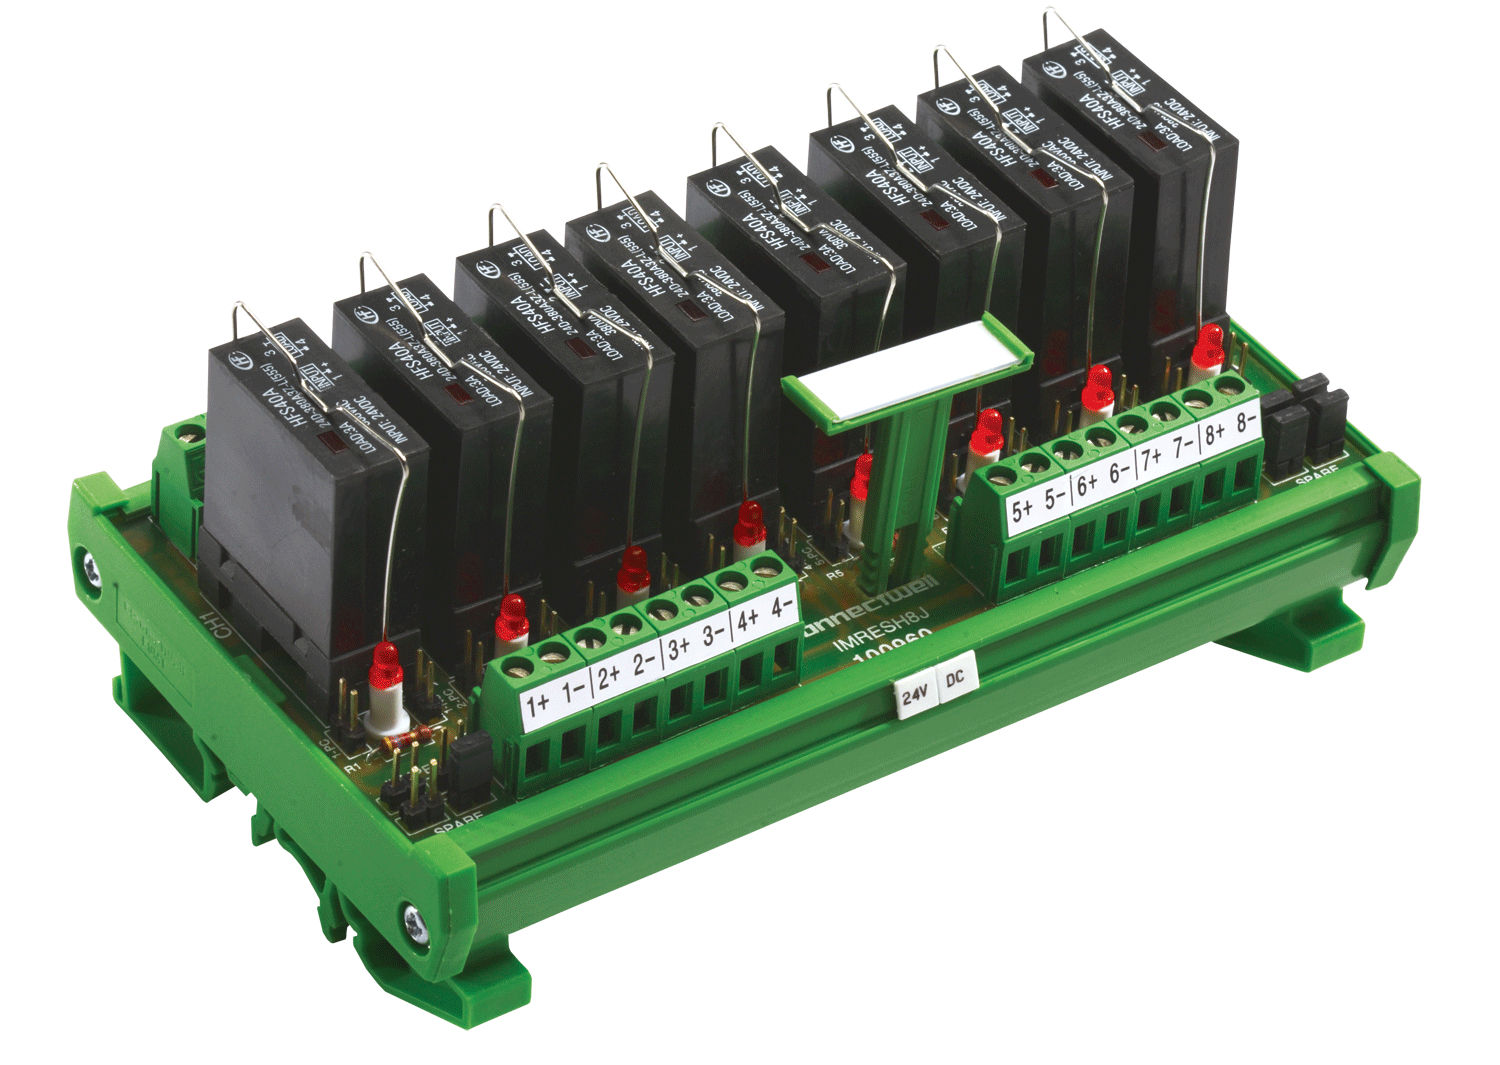 Modular solid state relay MOSFET interface DIN rail IMERS